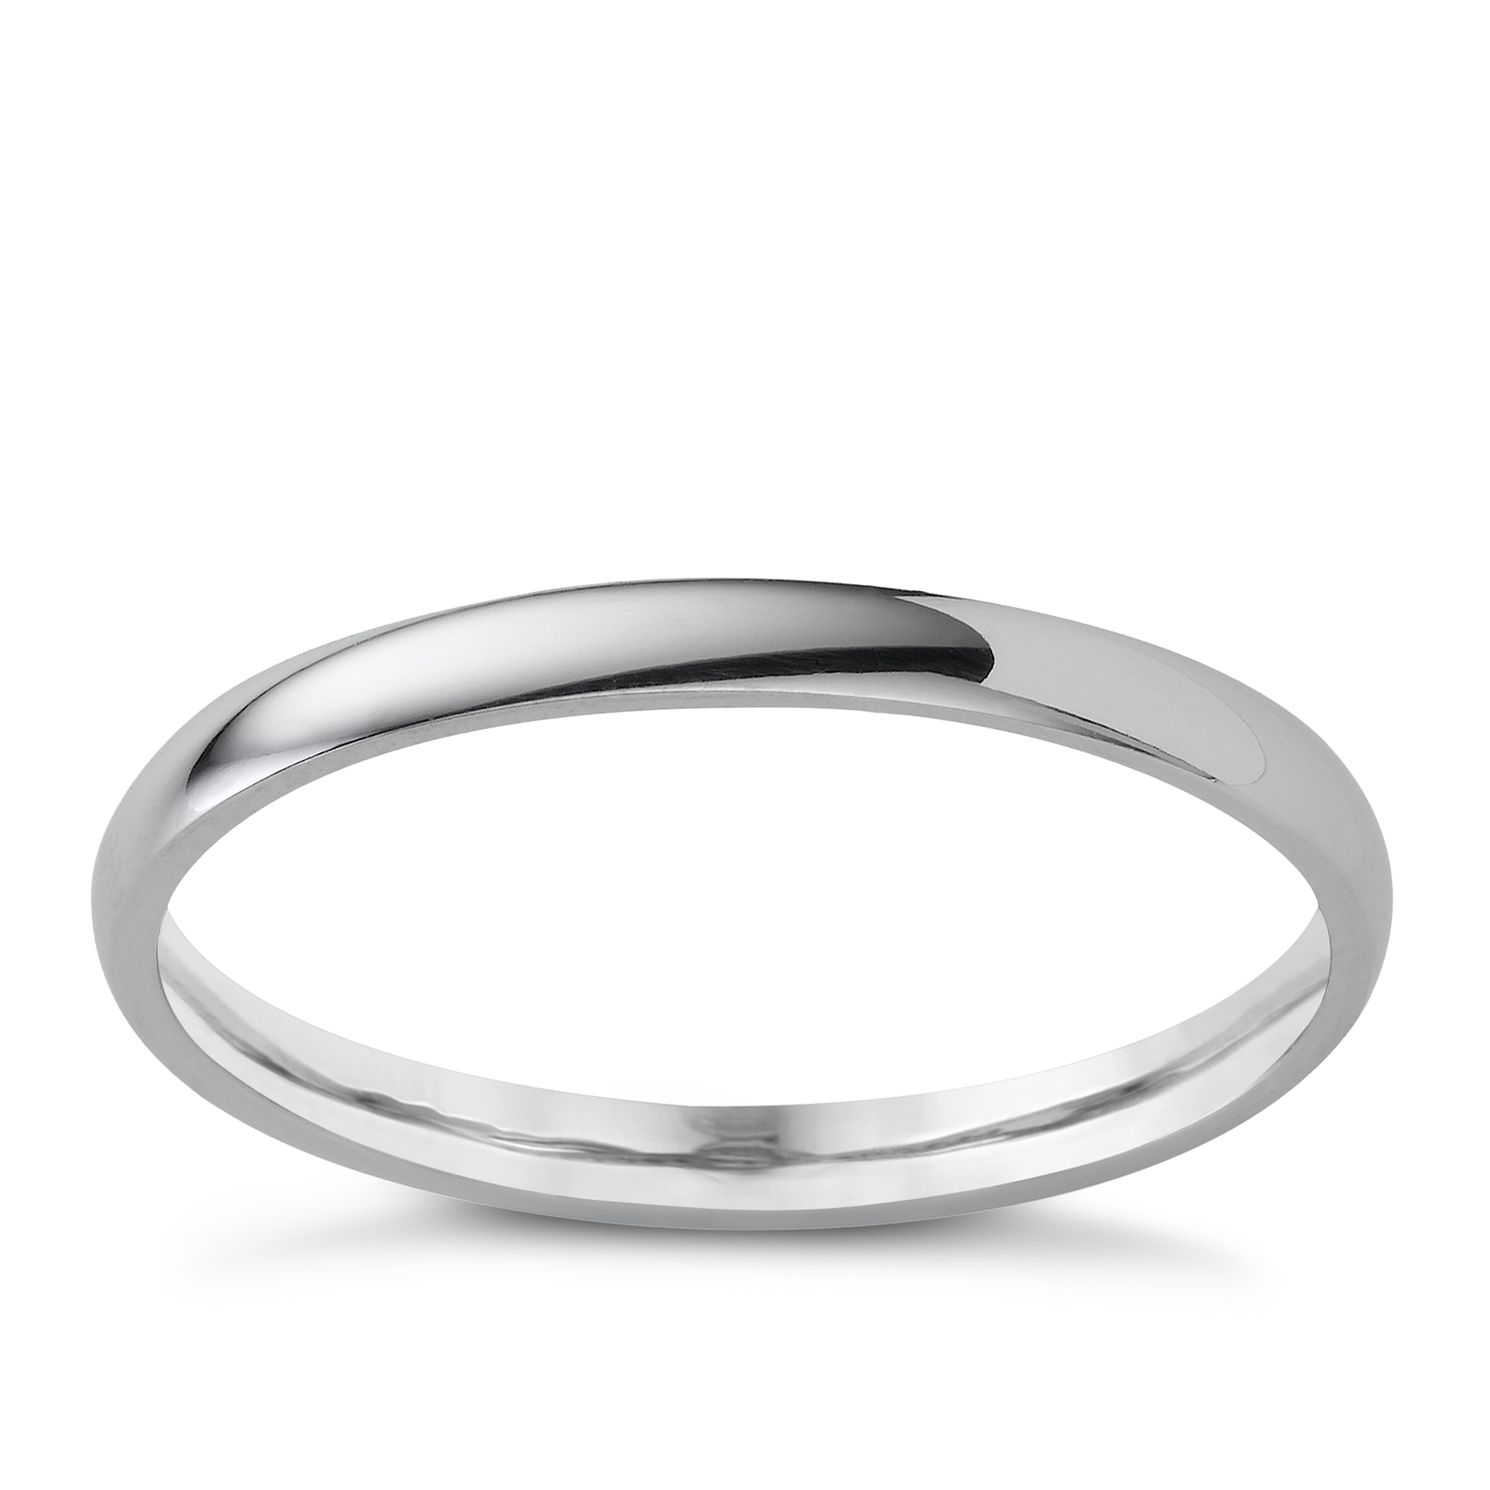 save band catbird half rings classic wedding magnetic round bands